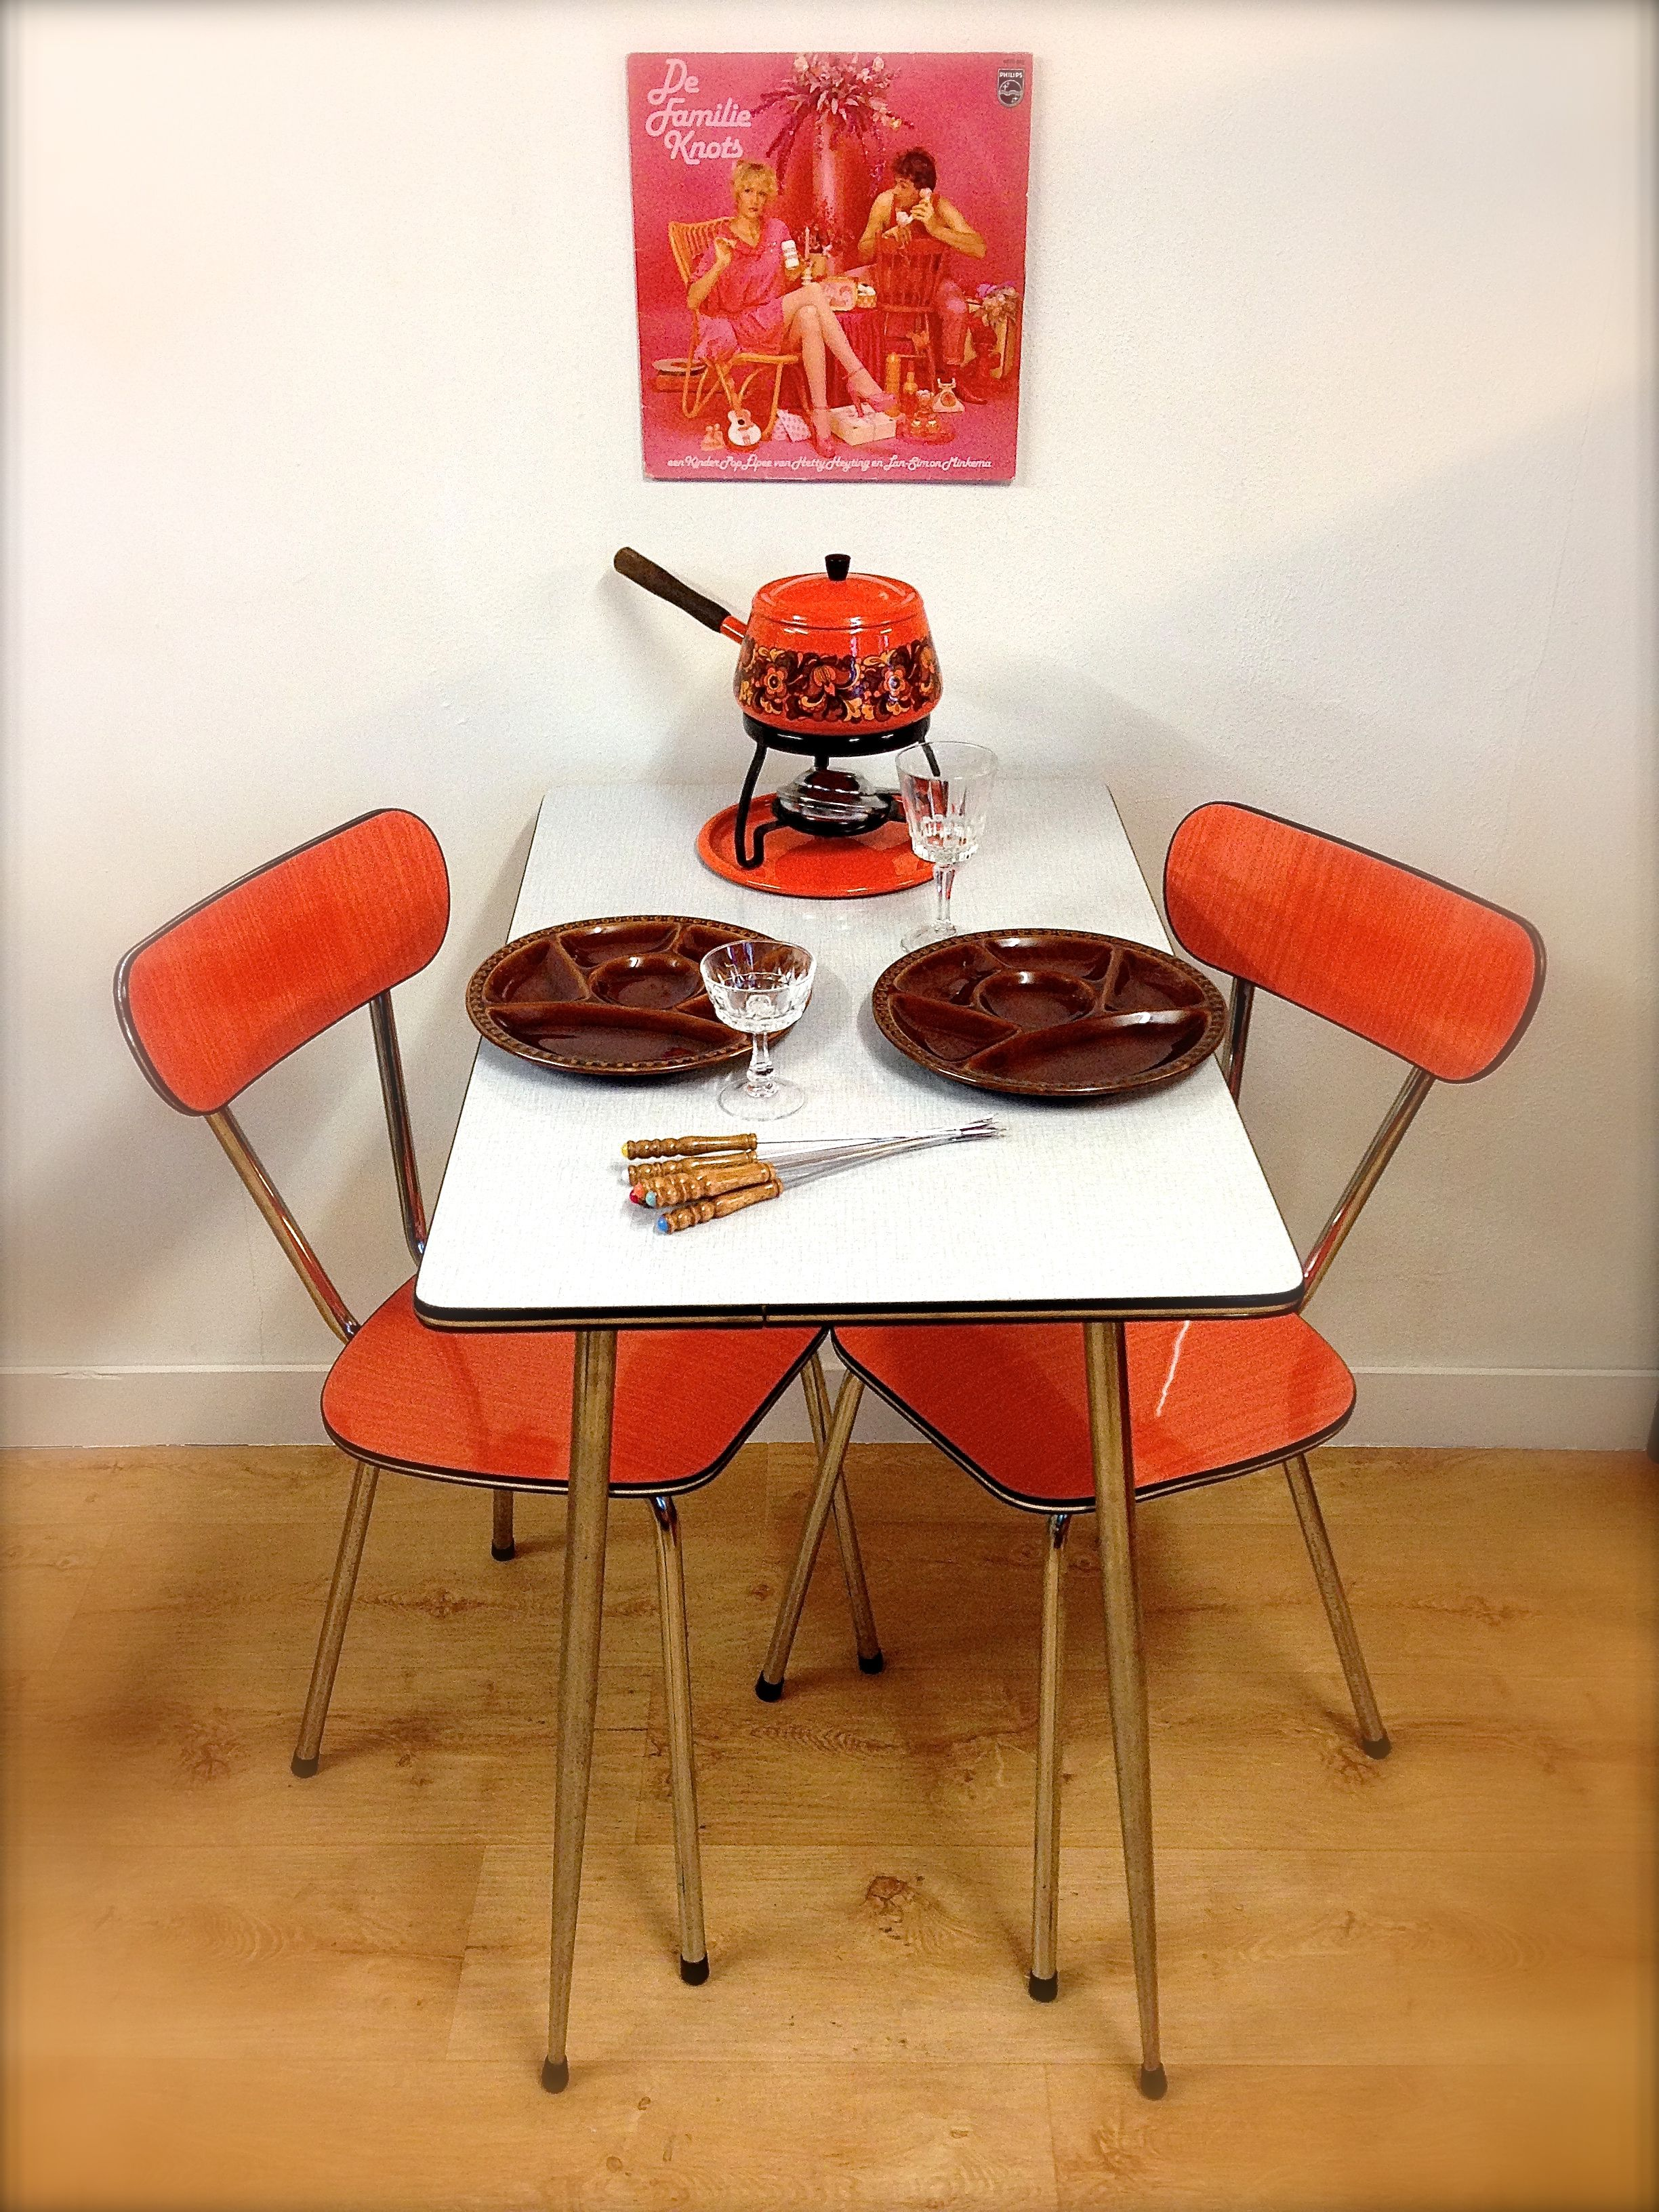 1950s formica kitchen table and chairs solid wood toy tafel en stoelen retro